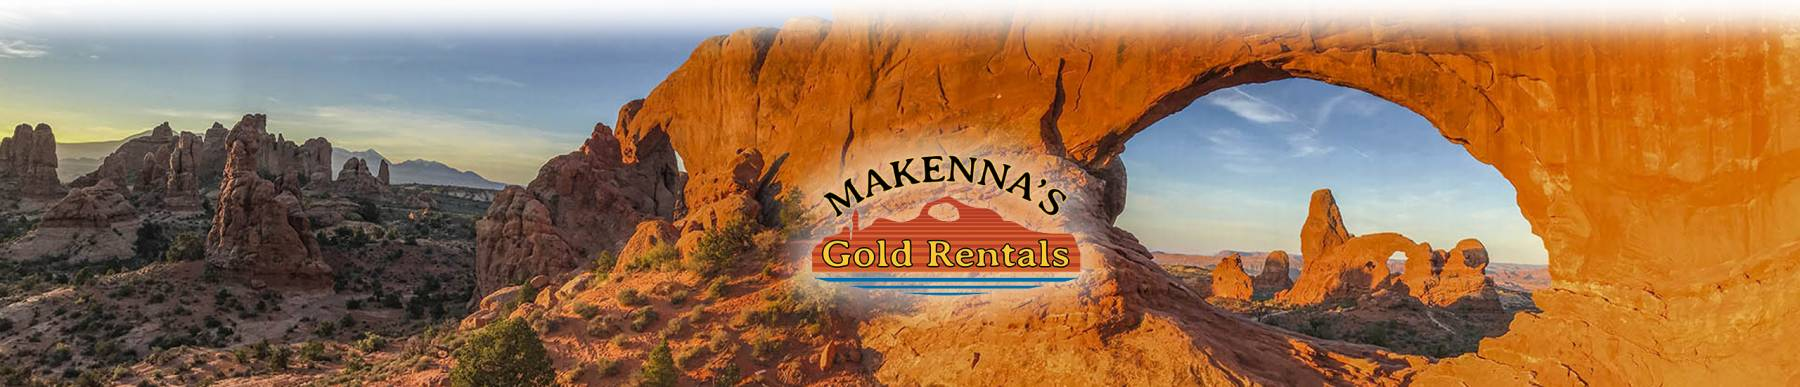 Makennas Gold Rentals